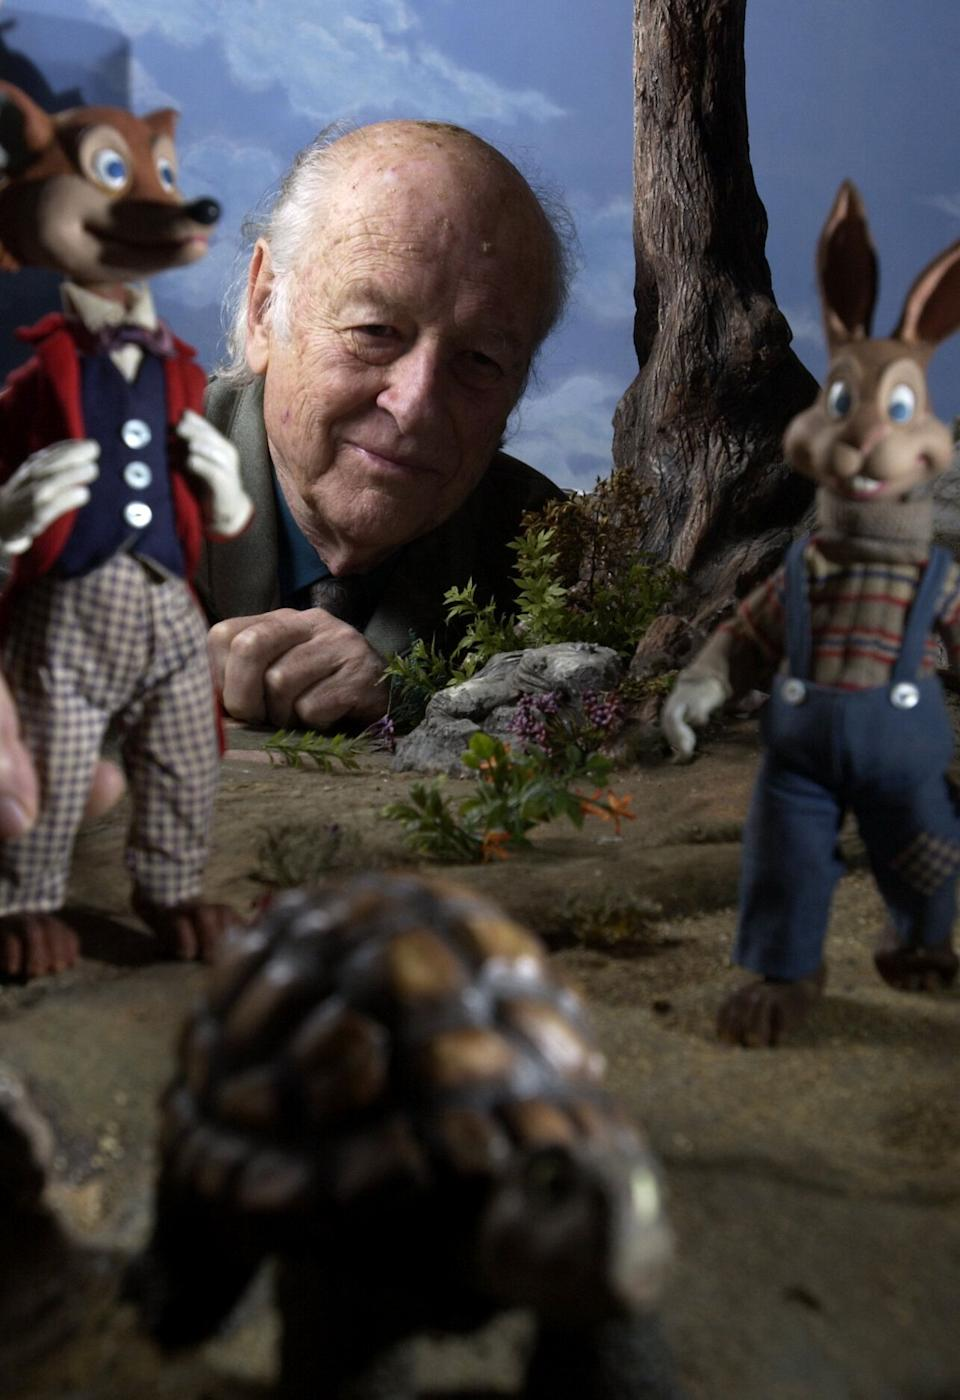 """Ray Harryhausen, master stop–motion animator recently completed """"The Tortoise and the Hare"""" with the help of freelance stop–motion animators Seamus Walsh, Mark Caballero and producer Richard Jones. Harryhausen began filming in 1952 using the same puppets.  (Photo by Myung J. Chun/Los Angeles Times via Getty Images)"""